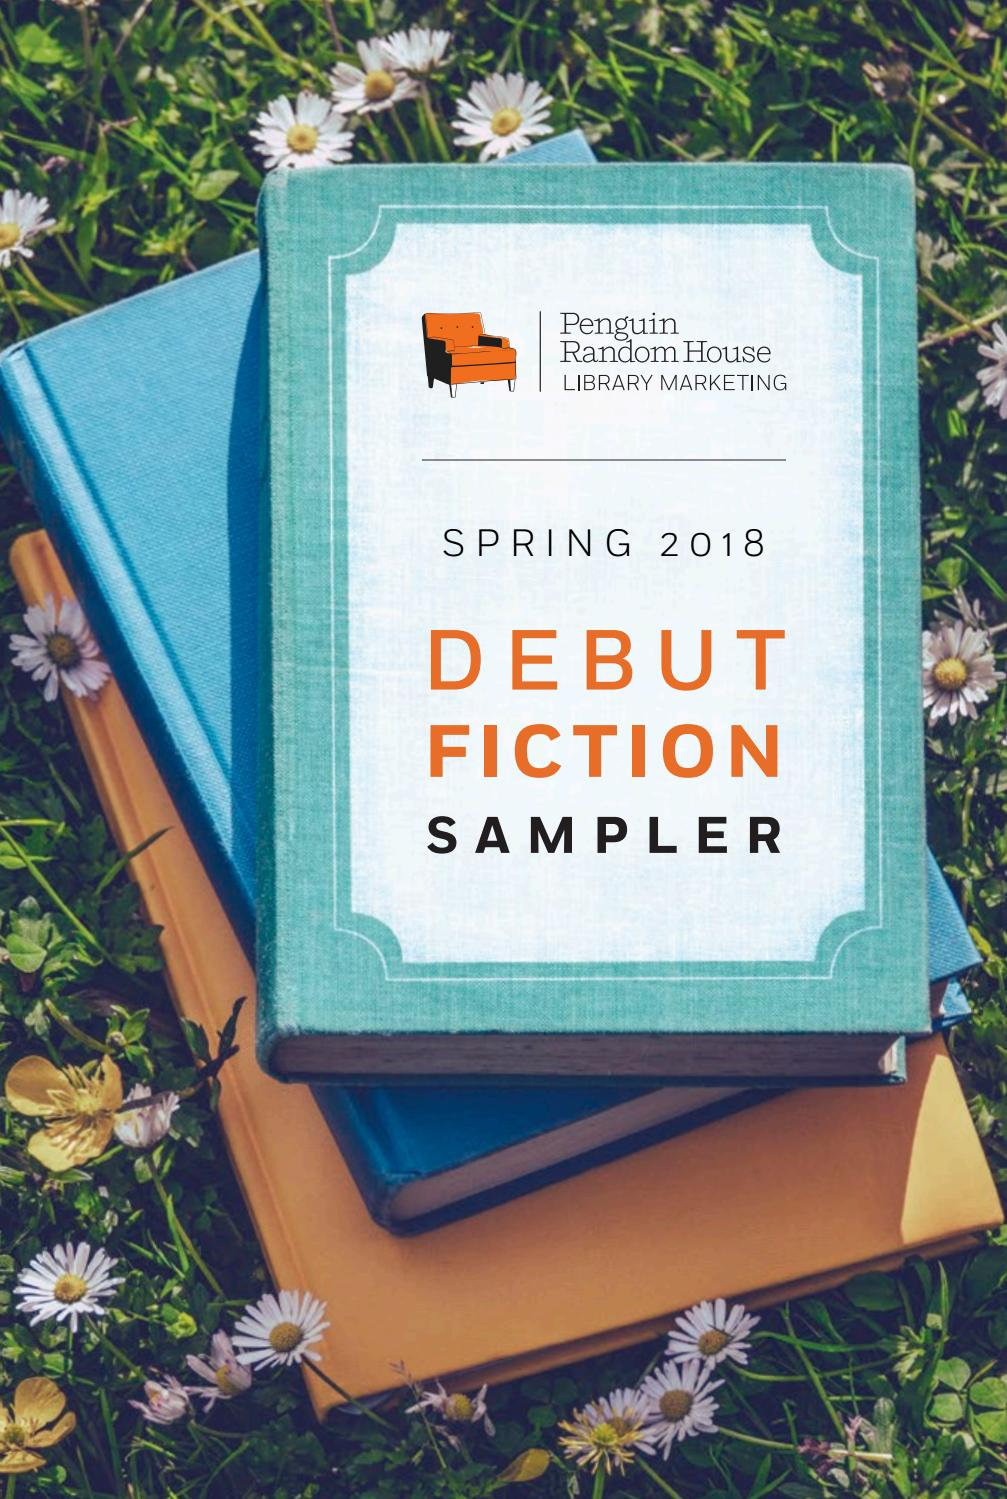 Spring 2018 Debut Fiction Sampler by PRH Library issuu